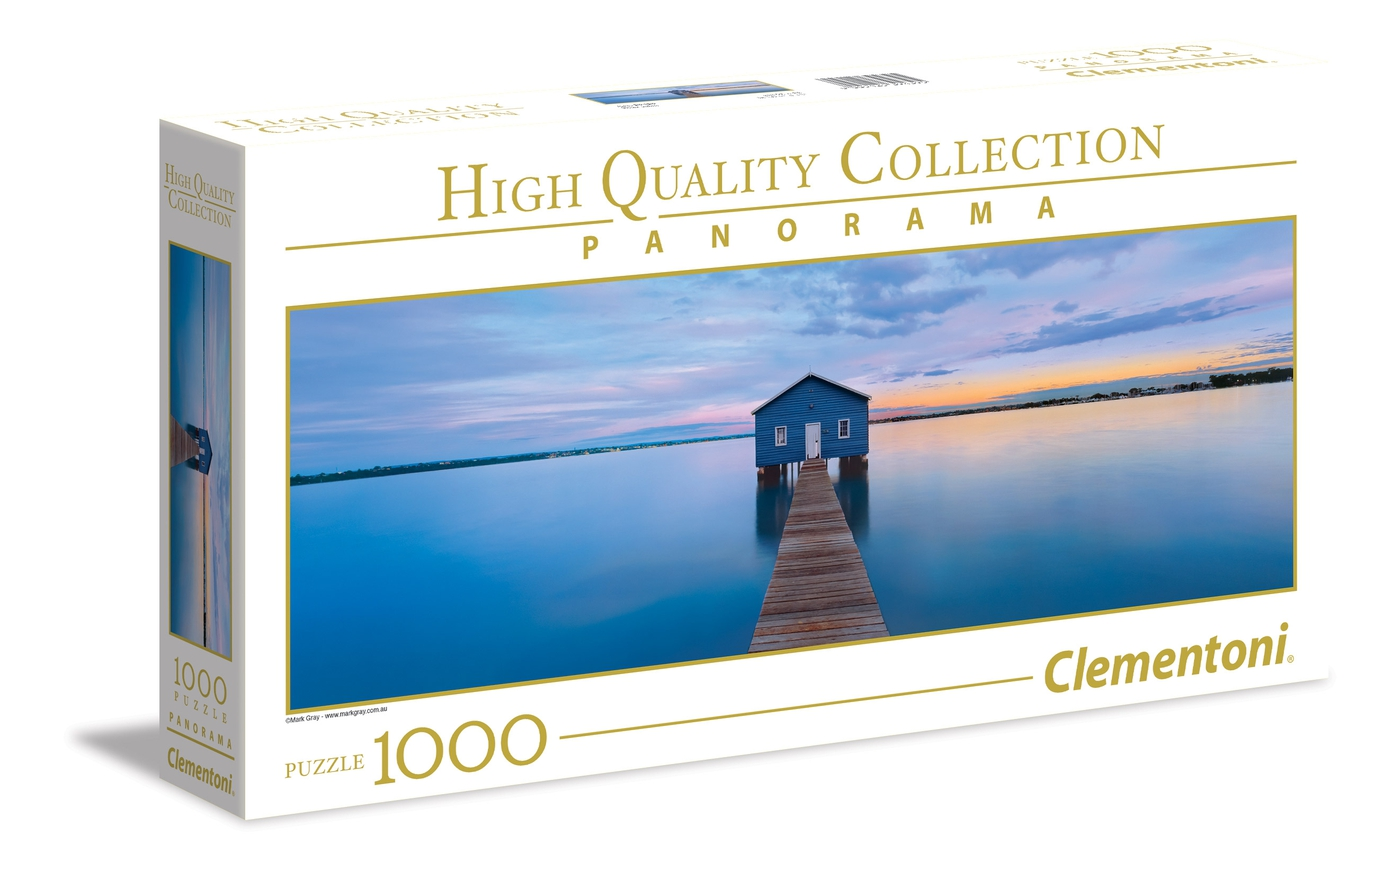 Clementoni 39396 High Quality Beside Still Water 1000pc Panorama Jigsaw Puzzle